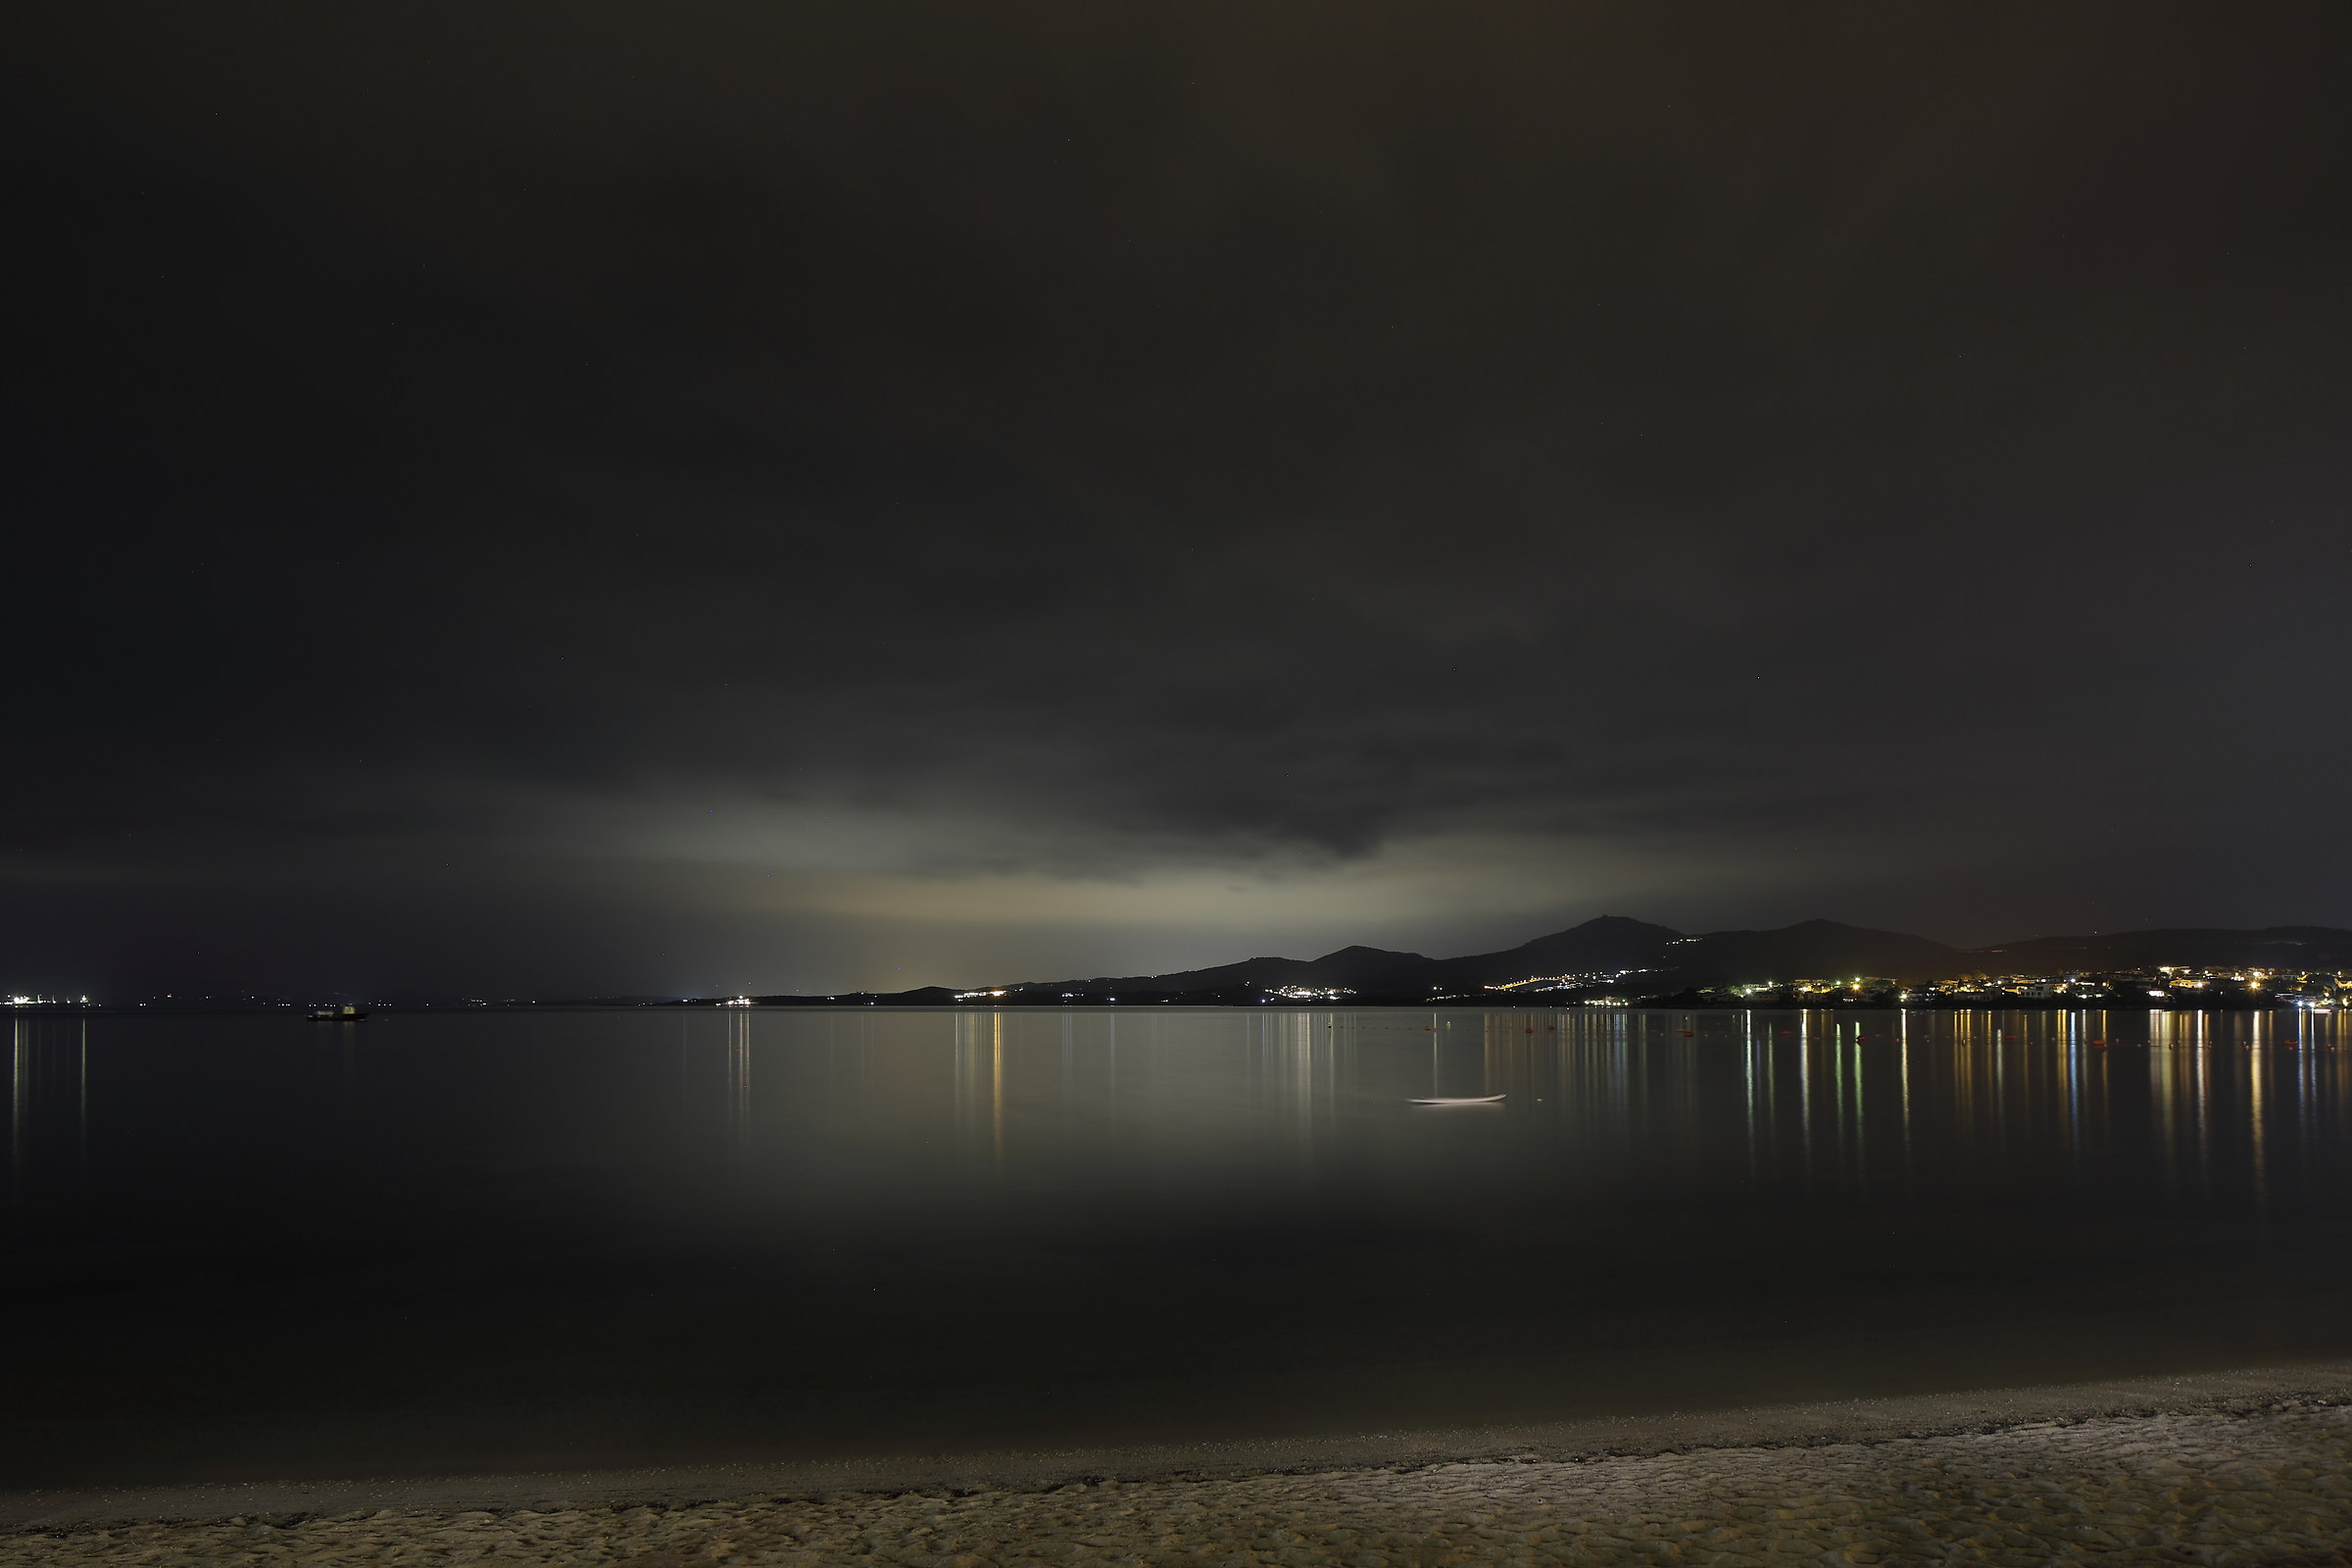 Lights and shadows on the Gulf of Olbia...